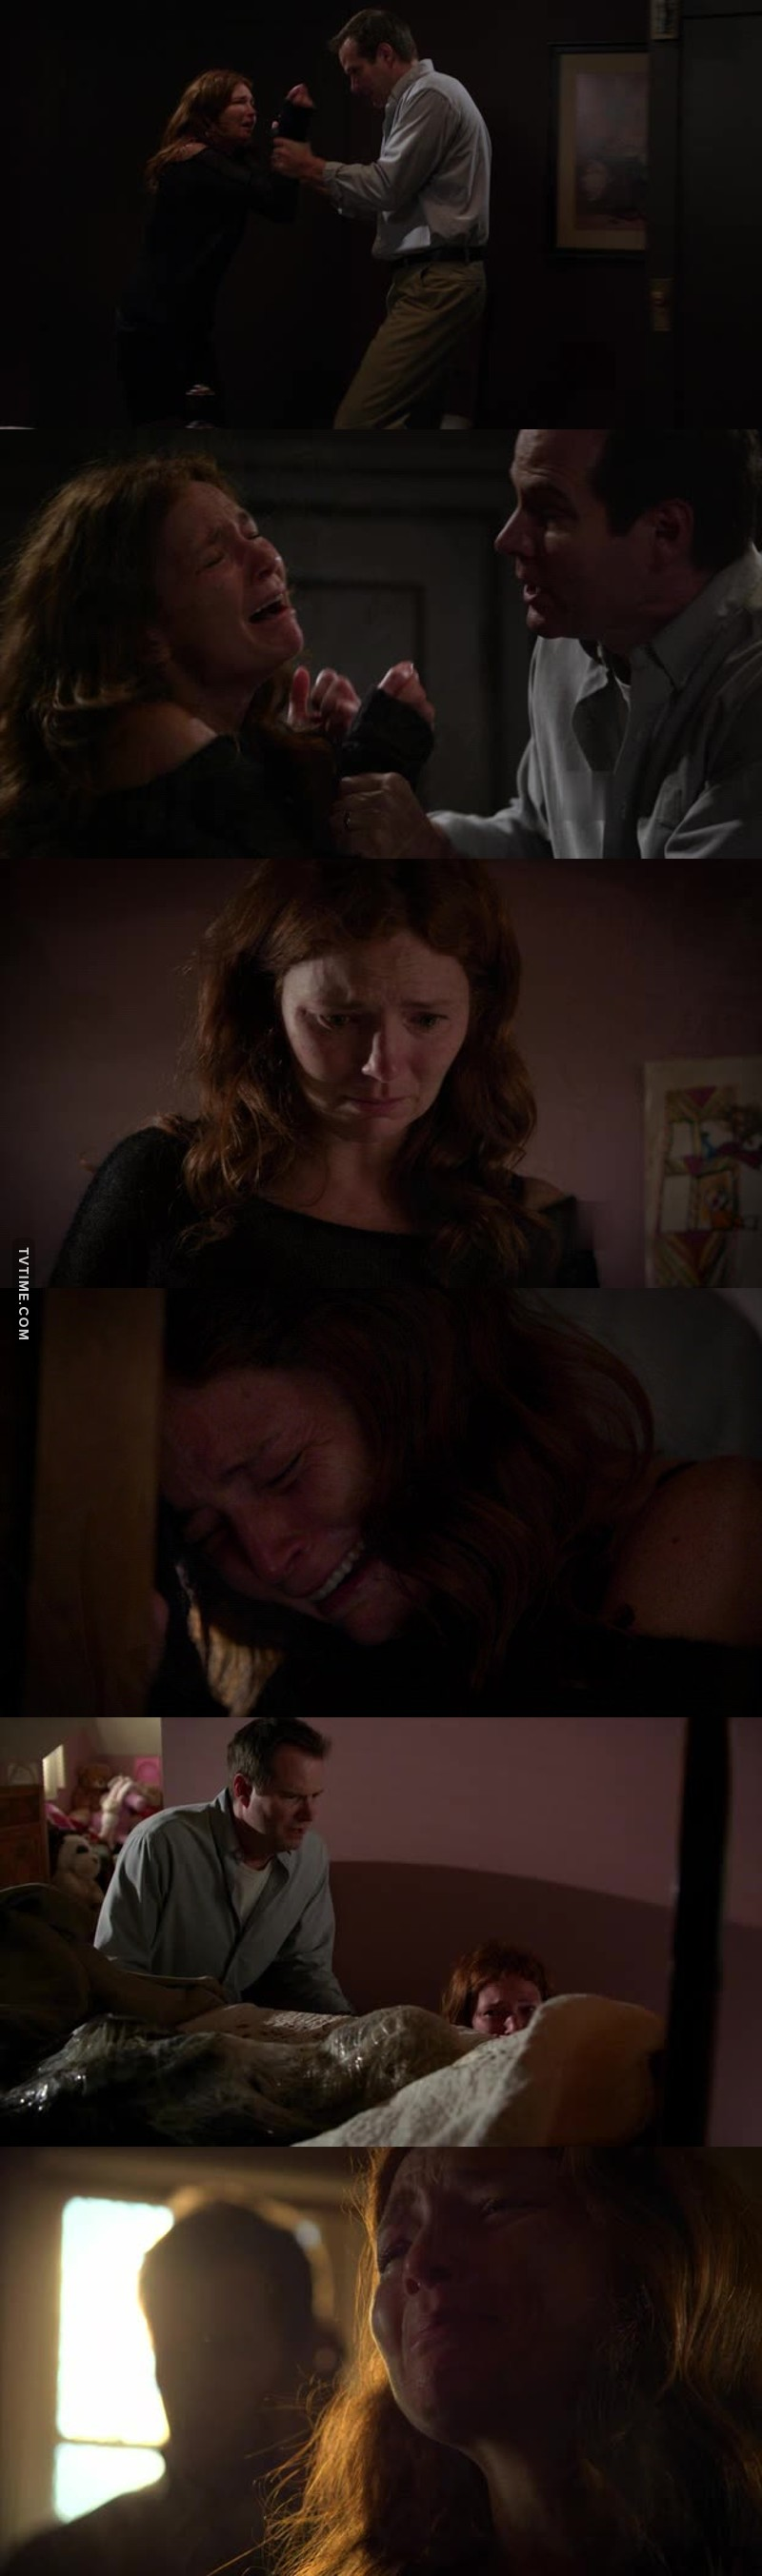 Episode sad 😭💔 this mother I cryed with her, I thought that girl is alive😭😭😭